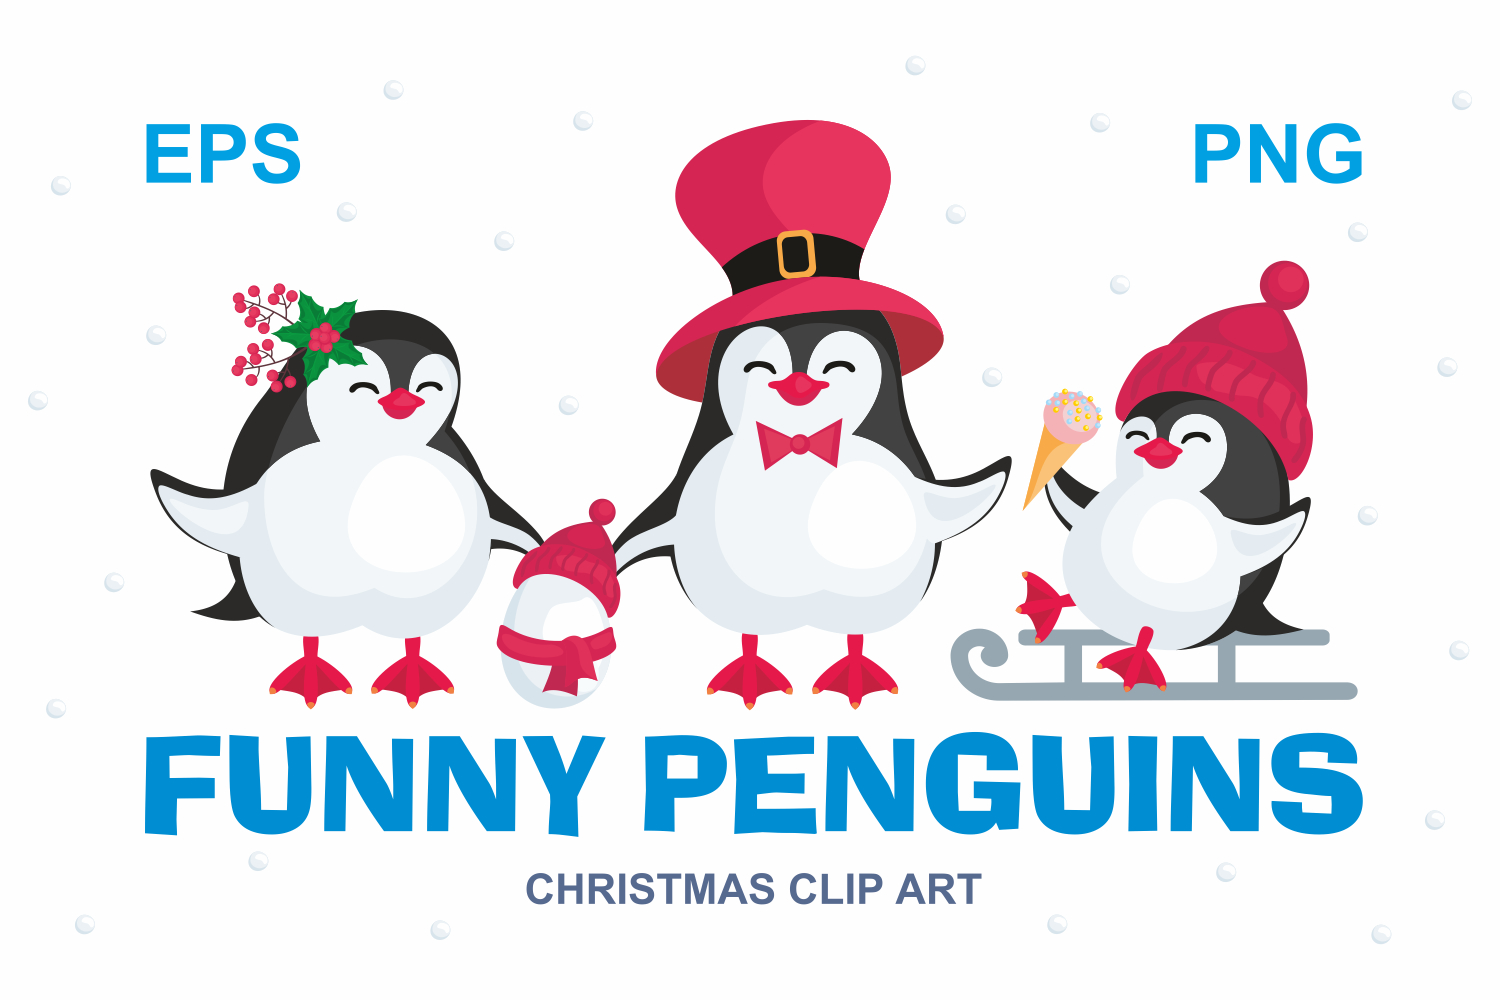 Funny penguins. Christmas clip art. example image 1